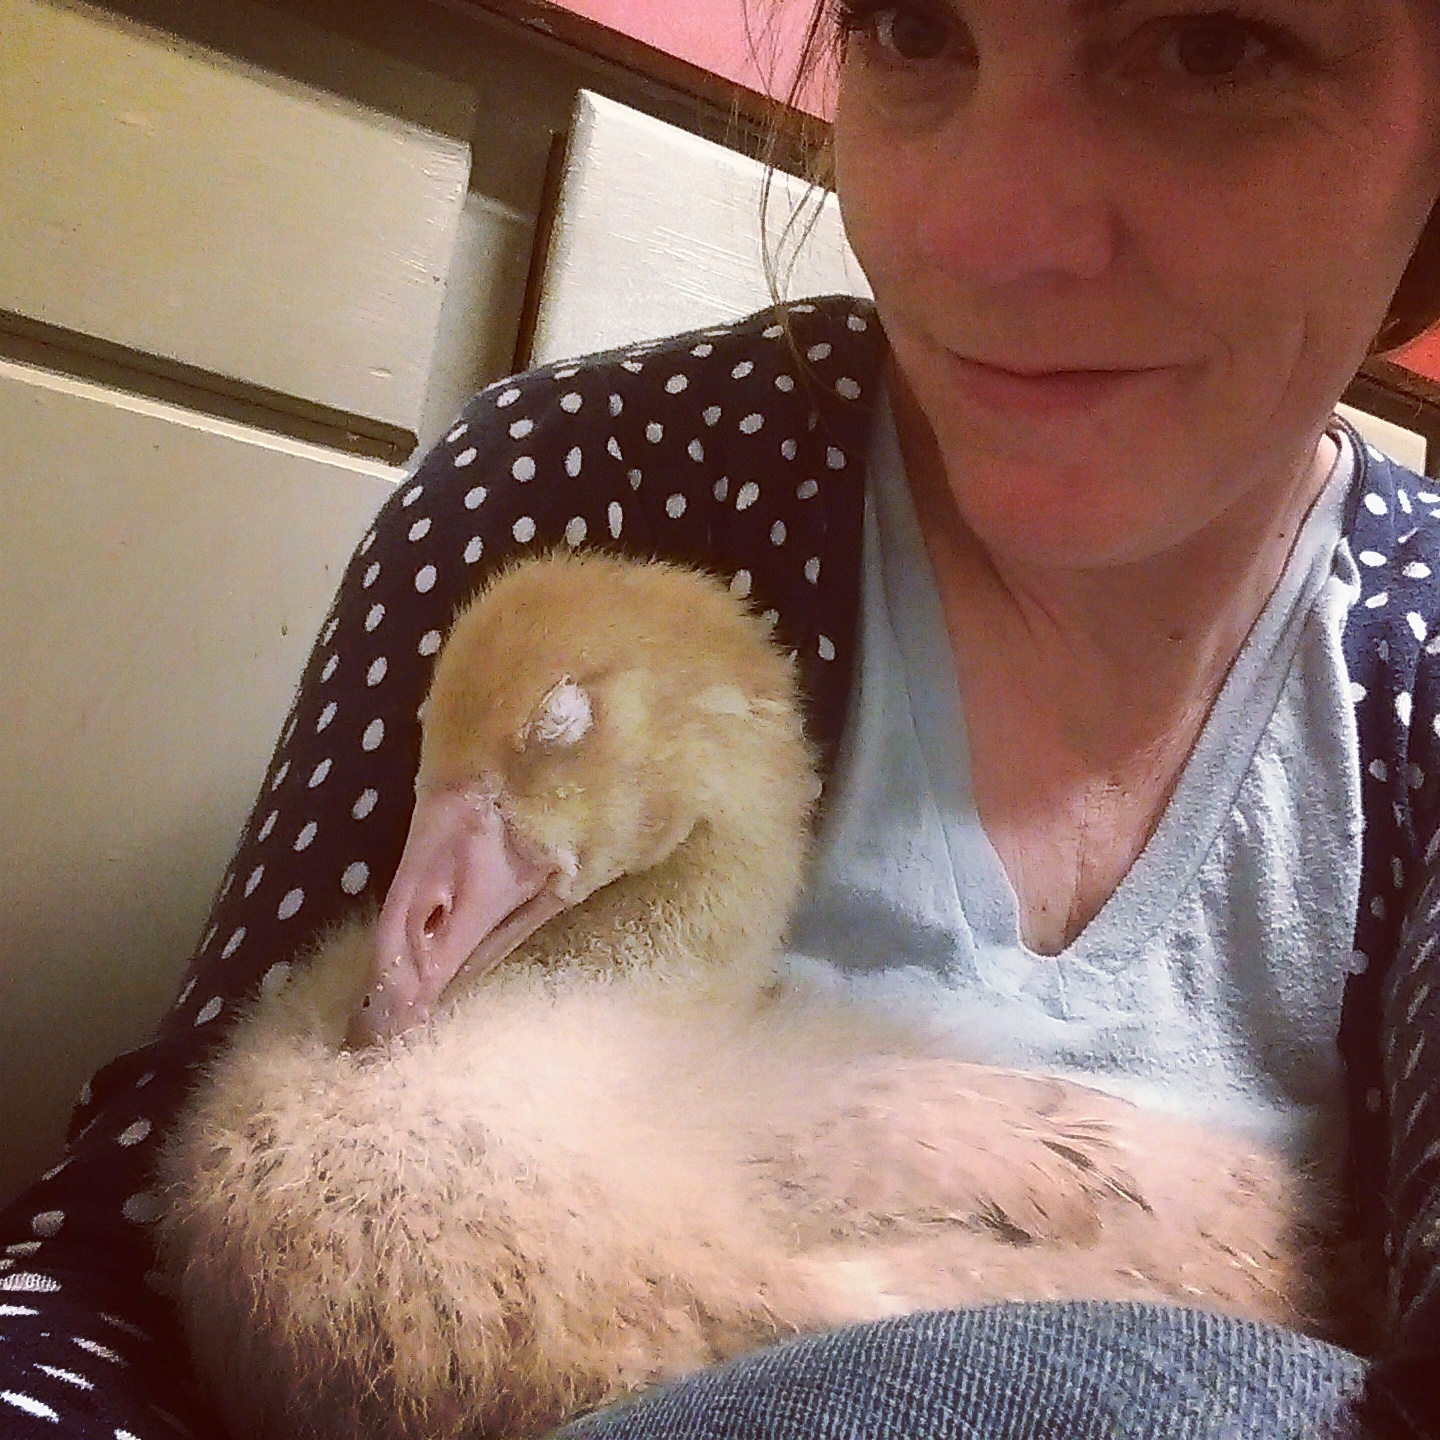 Snuggling a snoozing gosling. Yes! She actually did make little squeaky honking sounds when she snored.